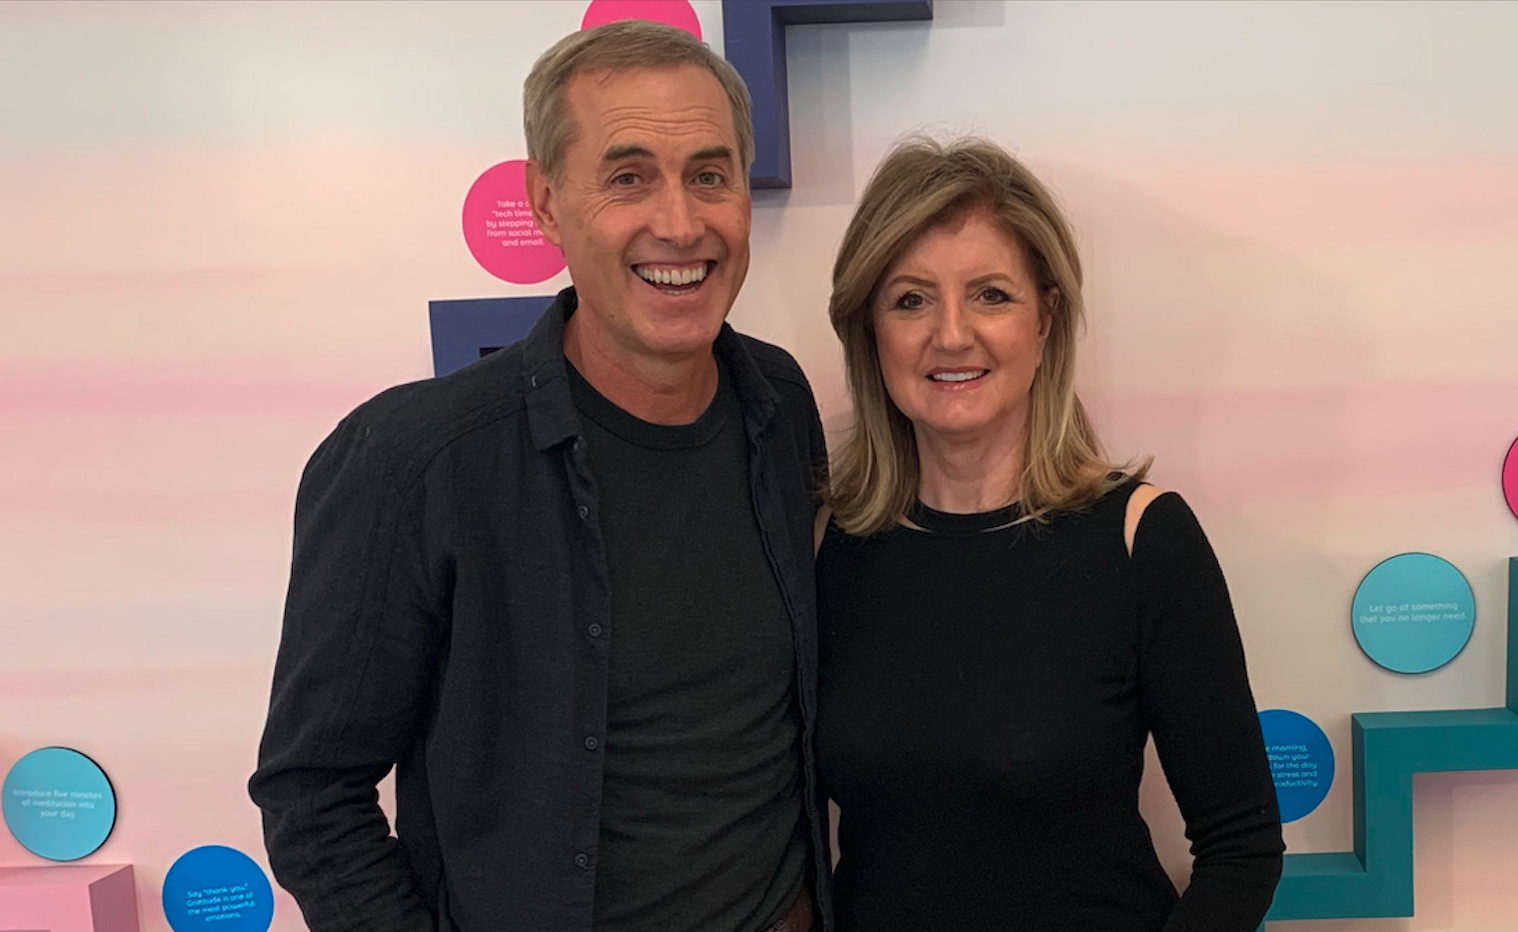 B.J. Fogg and Arianna Huffington in front of Thrive's Microstep Wall.